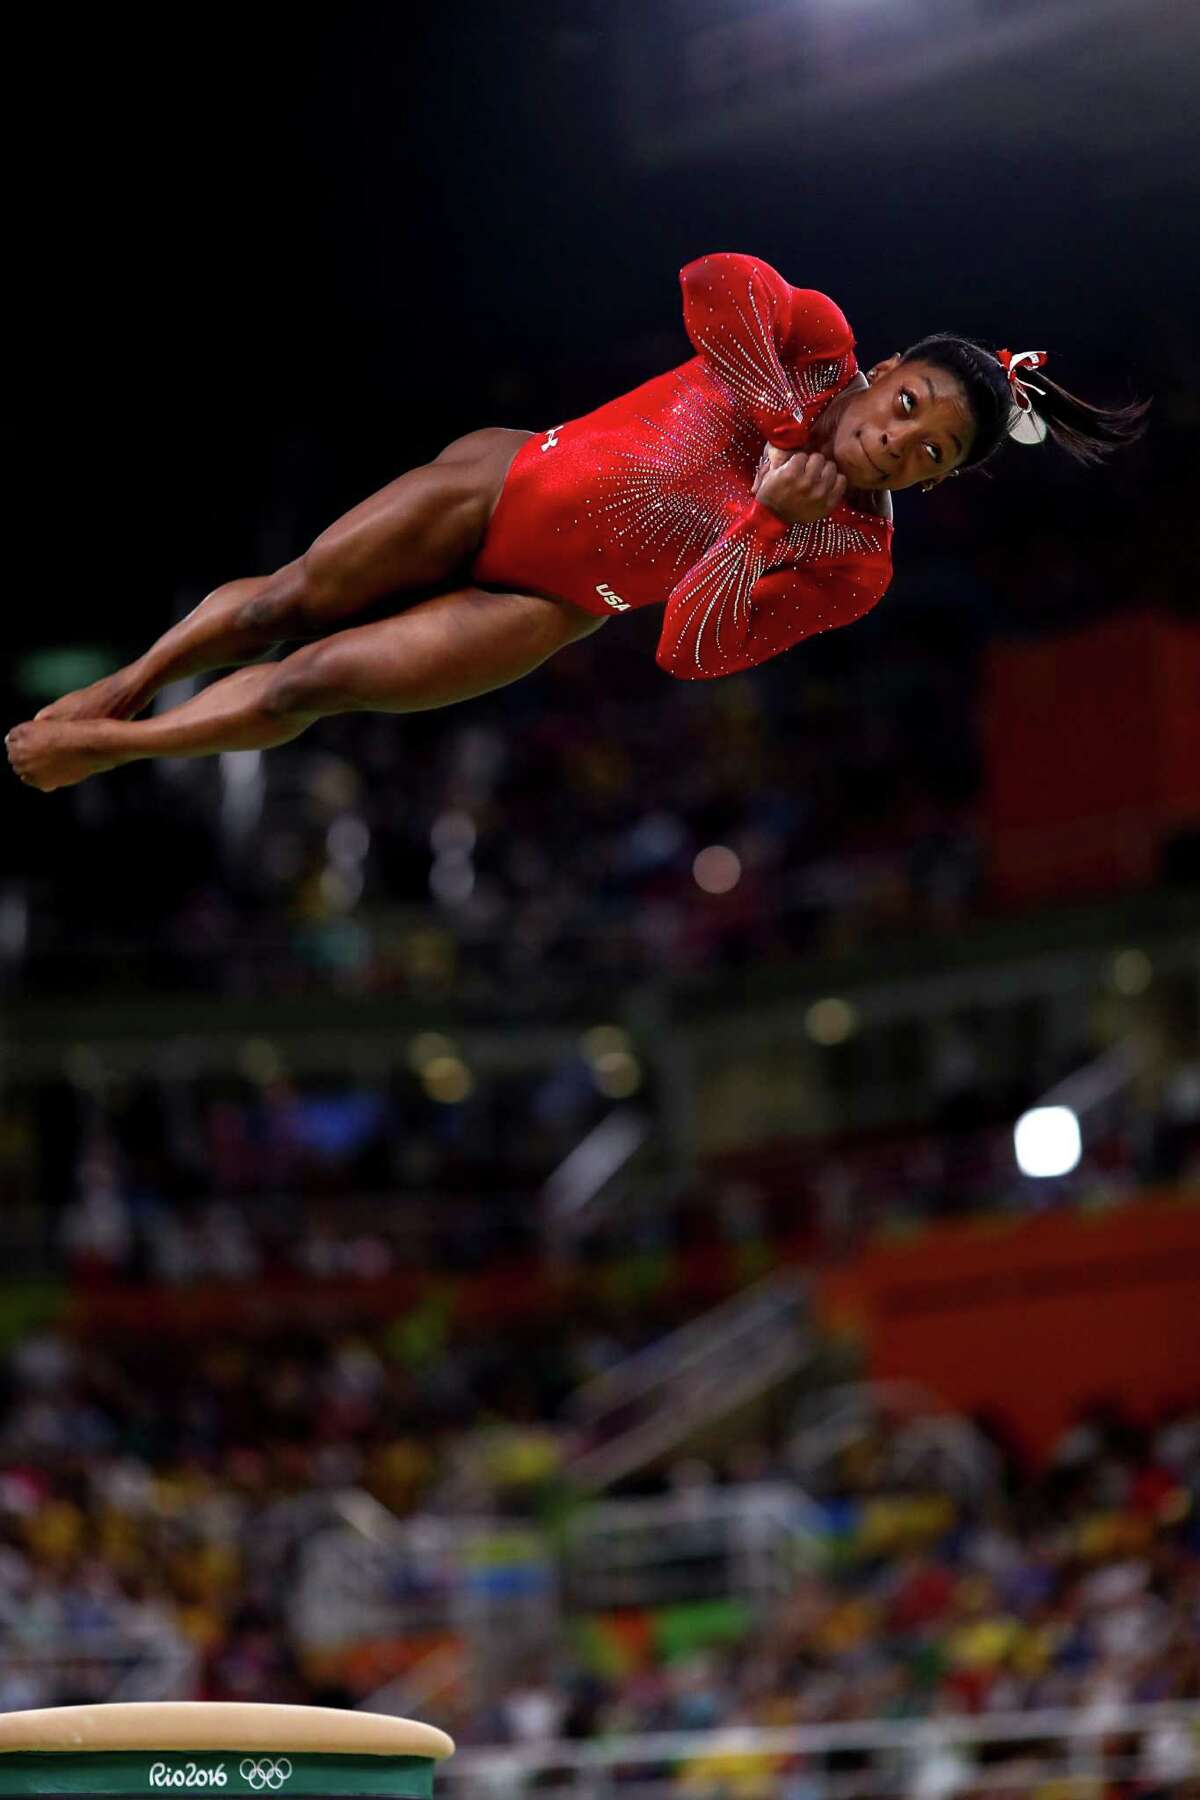 Spring's Simone Biles soars above the apparatus - and the other gymnasts - as she competes in the vault Sunday en route to winning the gold medal over Russia's Maria Paseka.